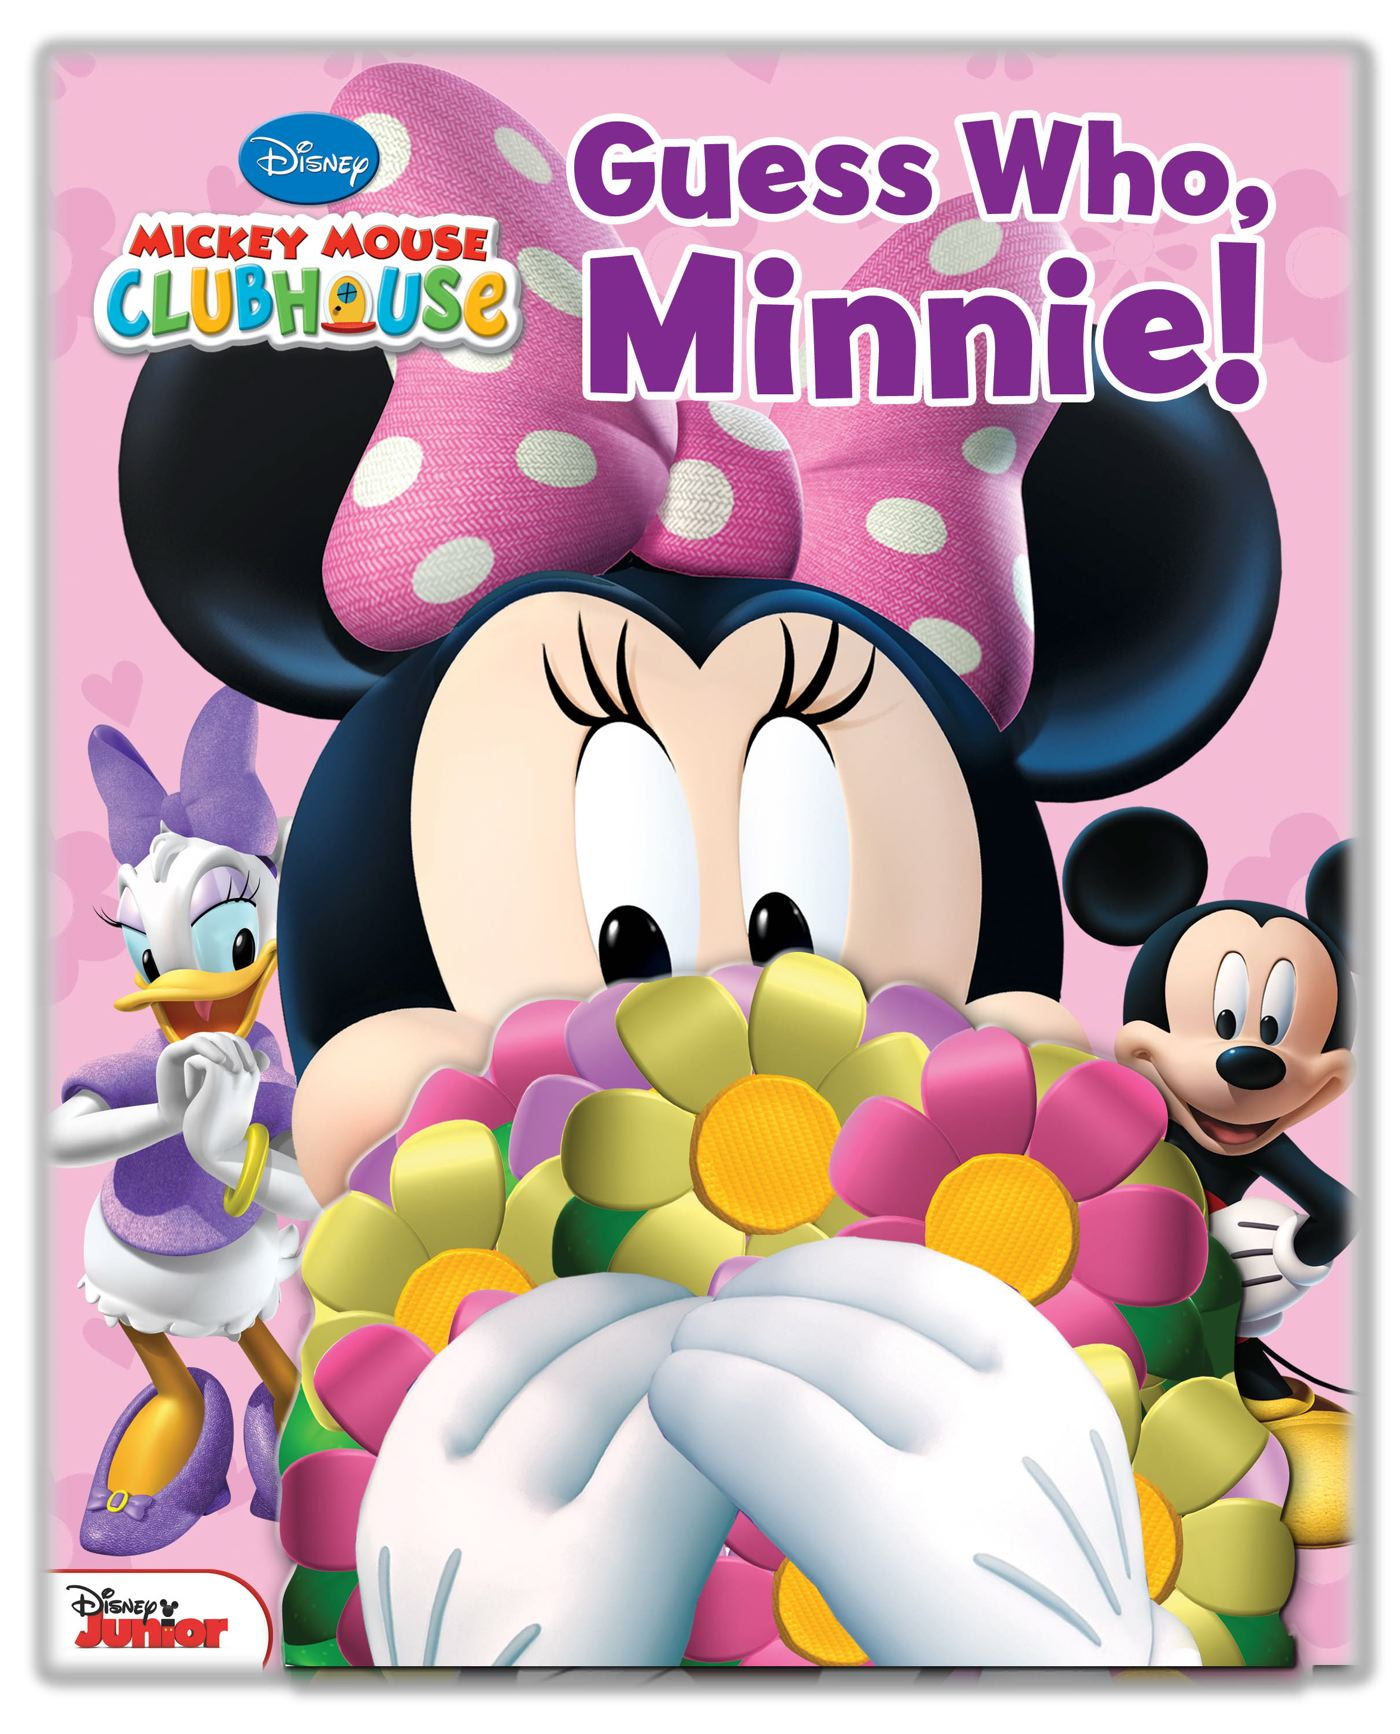 Disney mickey mouse clubhouse guess who minnie 9780794425555 hr